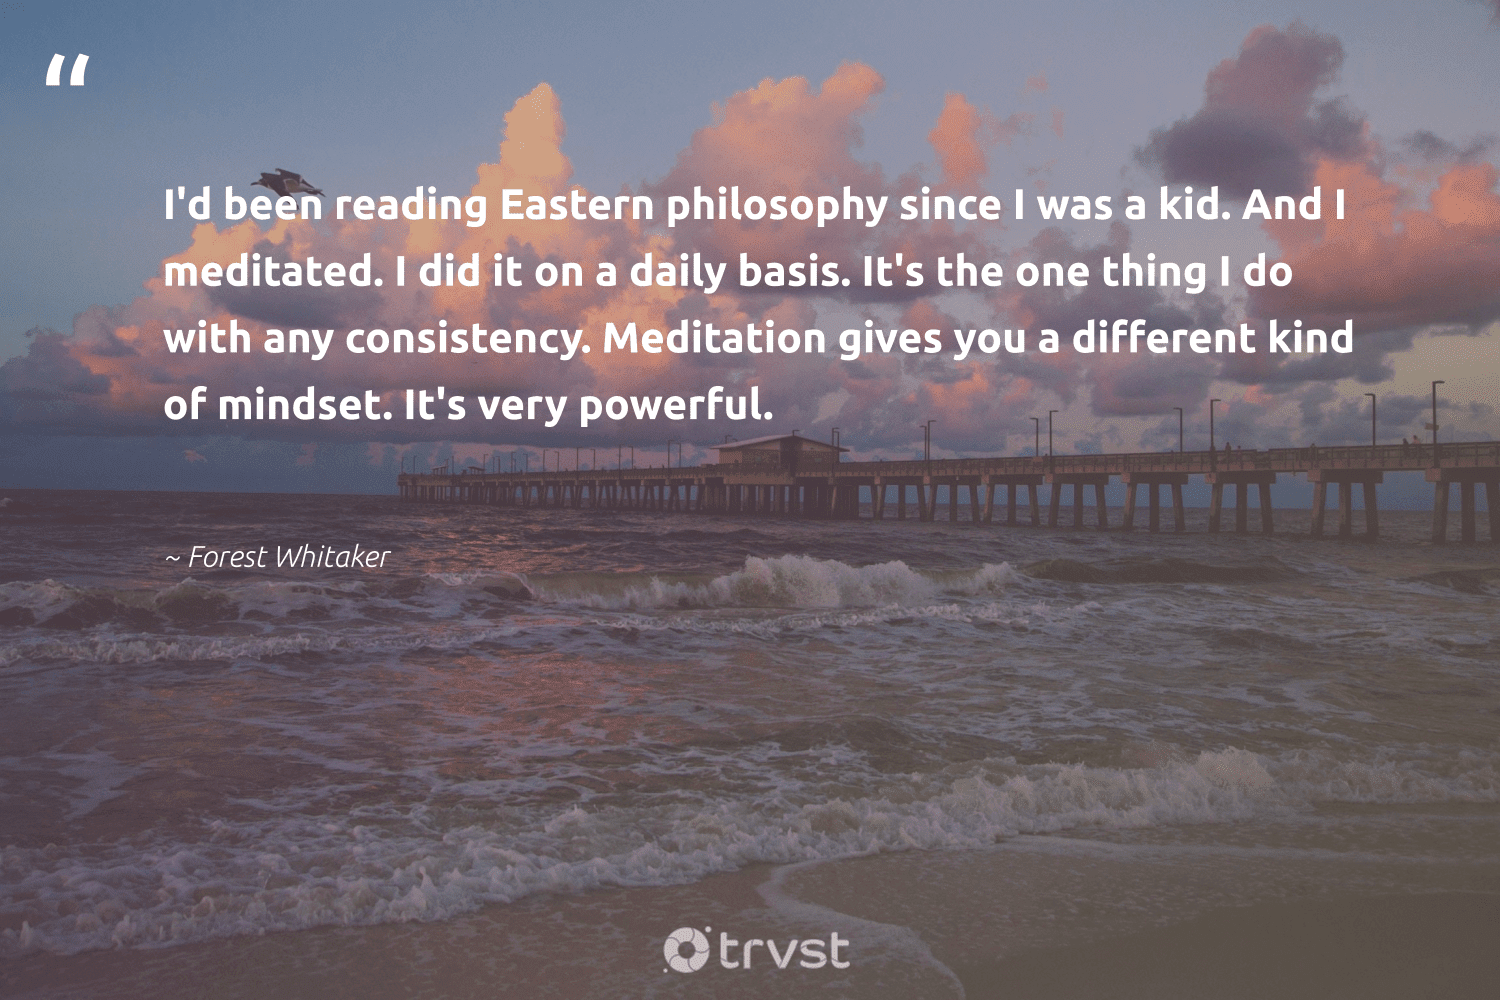 """""""I'd been reading Eastern philosophy since I was a kid. And I meditated. I did it on a daily basis. It's the one thing I do with any consistency. Meditation gives you a different kind of mindset. It's very powerful.""""  - Forest Whitaker #trvst #quotes #mindset #meditation #creativemindset #mindfulness #togetherwecan #nevergiveup #dogood #motivation #meditate #begreat"""